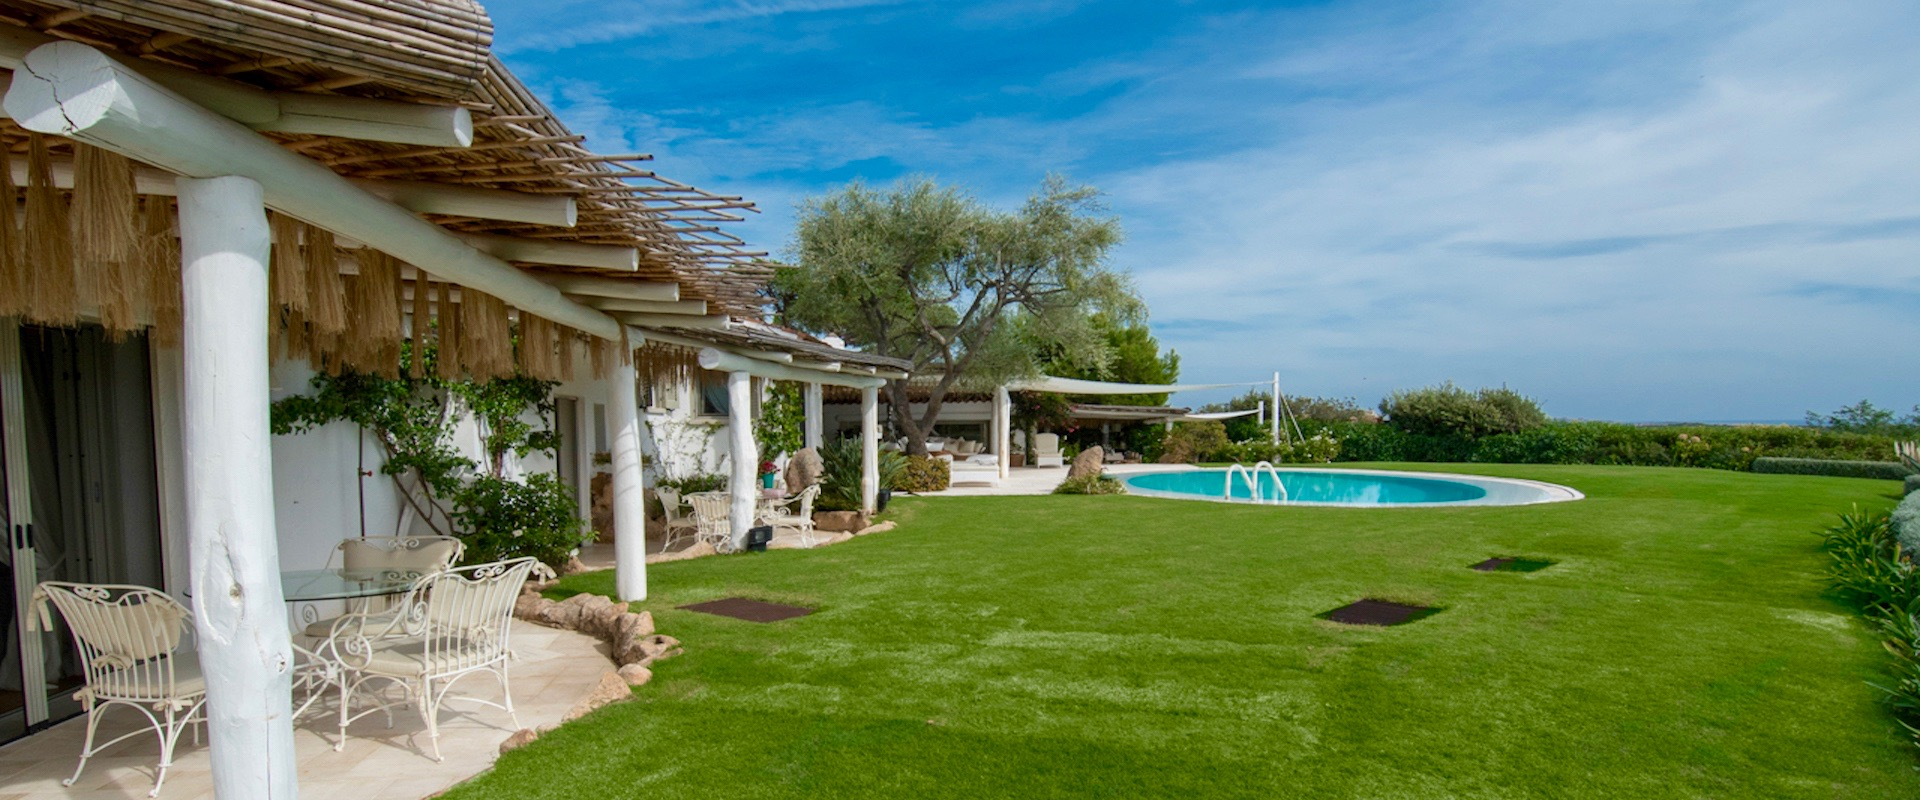 Rental villas in Porto Cervo on the sea for the summer